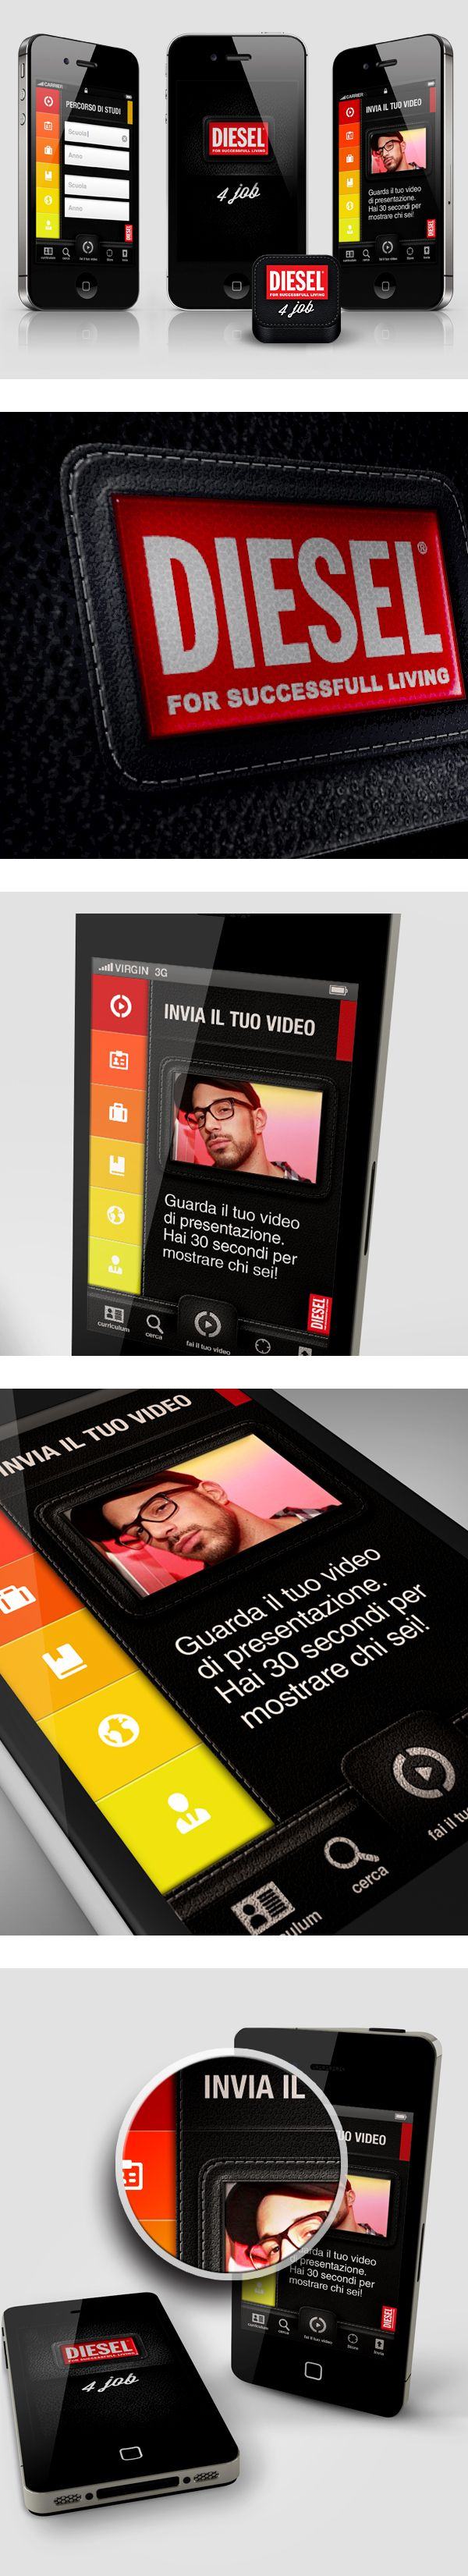 Mobile UI - App Proposal by Gaia Zuccaro, via Behance